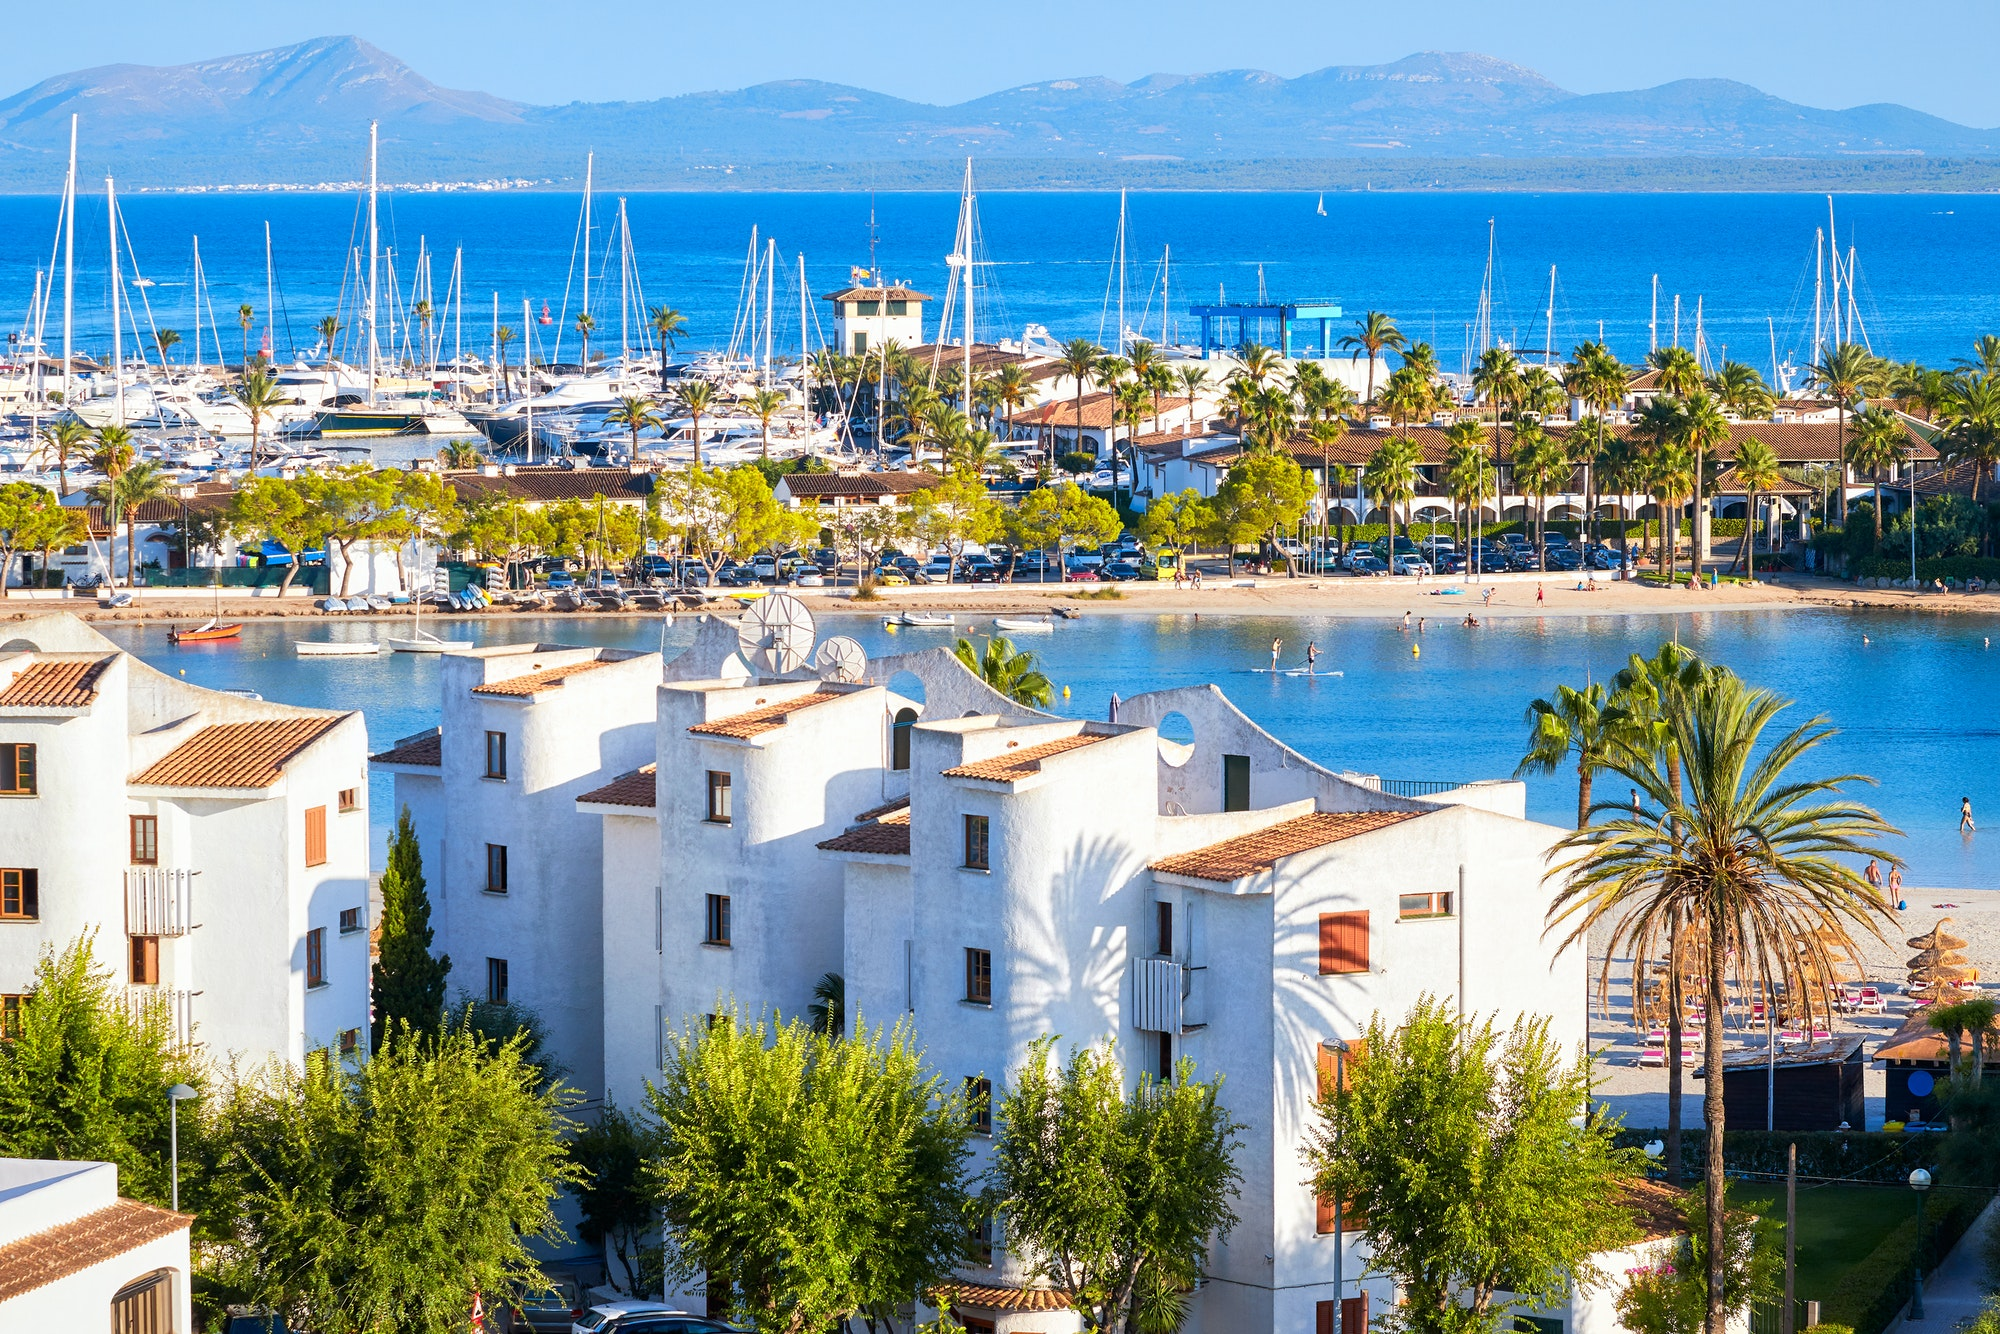 The Balearic Islands are the most expensive community